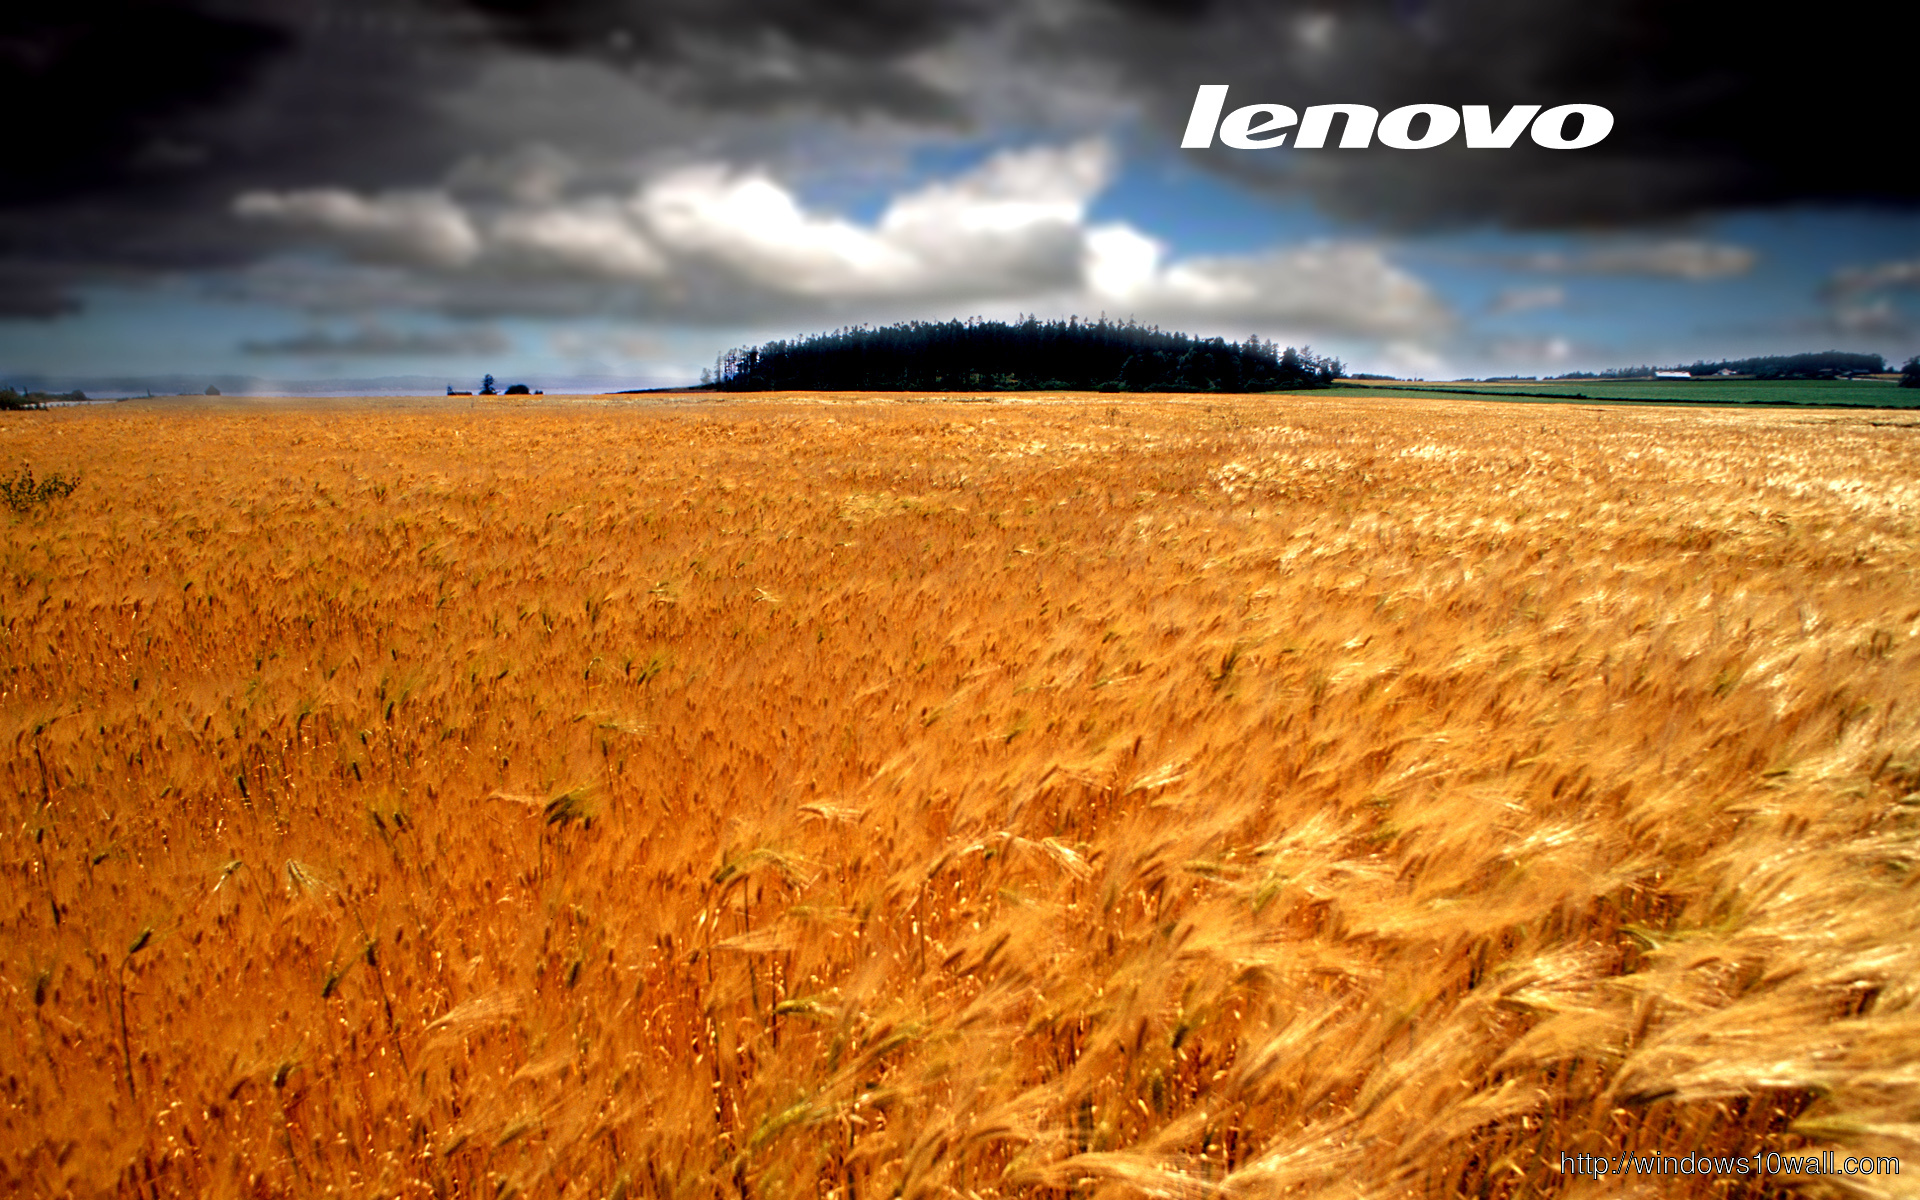 Fonds D Cran Lenovo Background Wallpaper